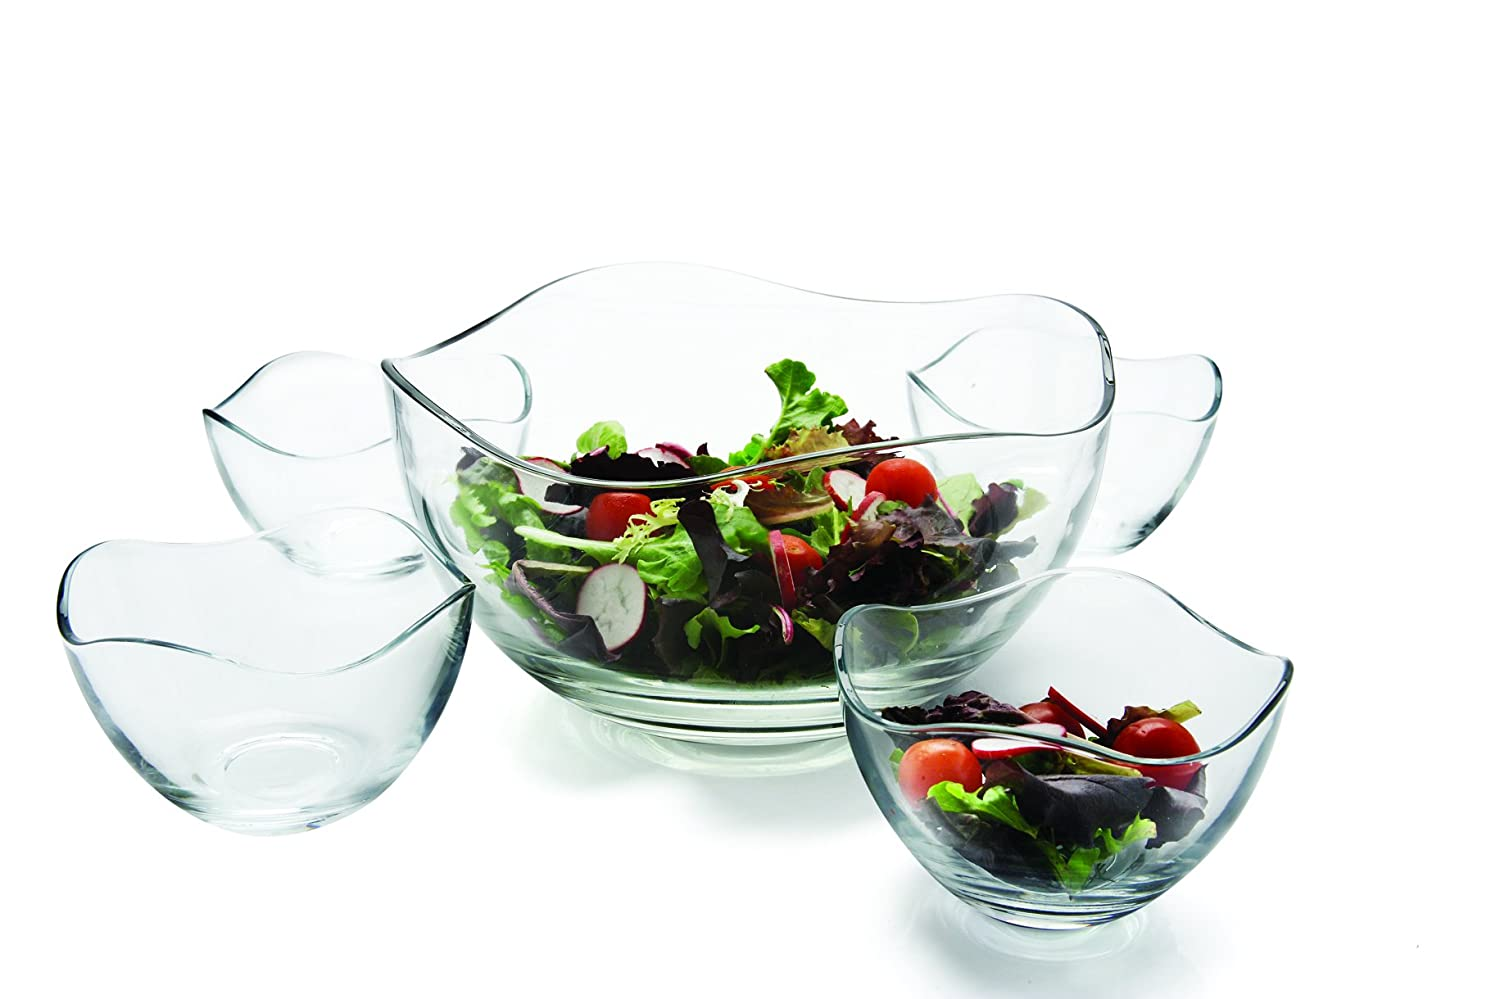 Salad Cheese Ice Cream Home Serving Dish Glassware for Fruits Candy Gala 5pc 1-10D Circleware 55635 Set of 5 Wavy Glass Mixing Bowls Set Best Gifts Punch Dessert 4-5.25D Food